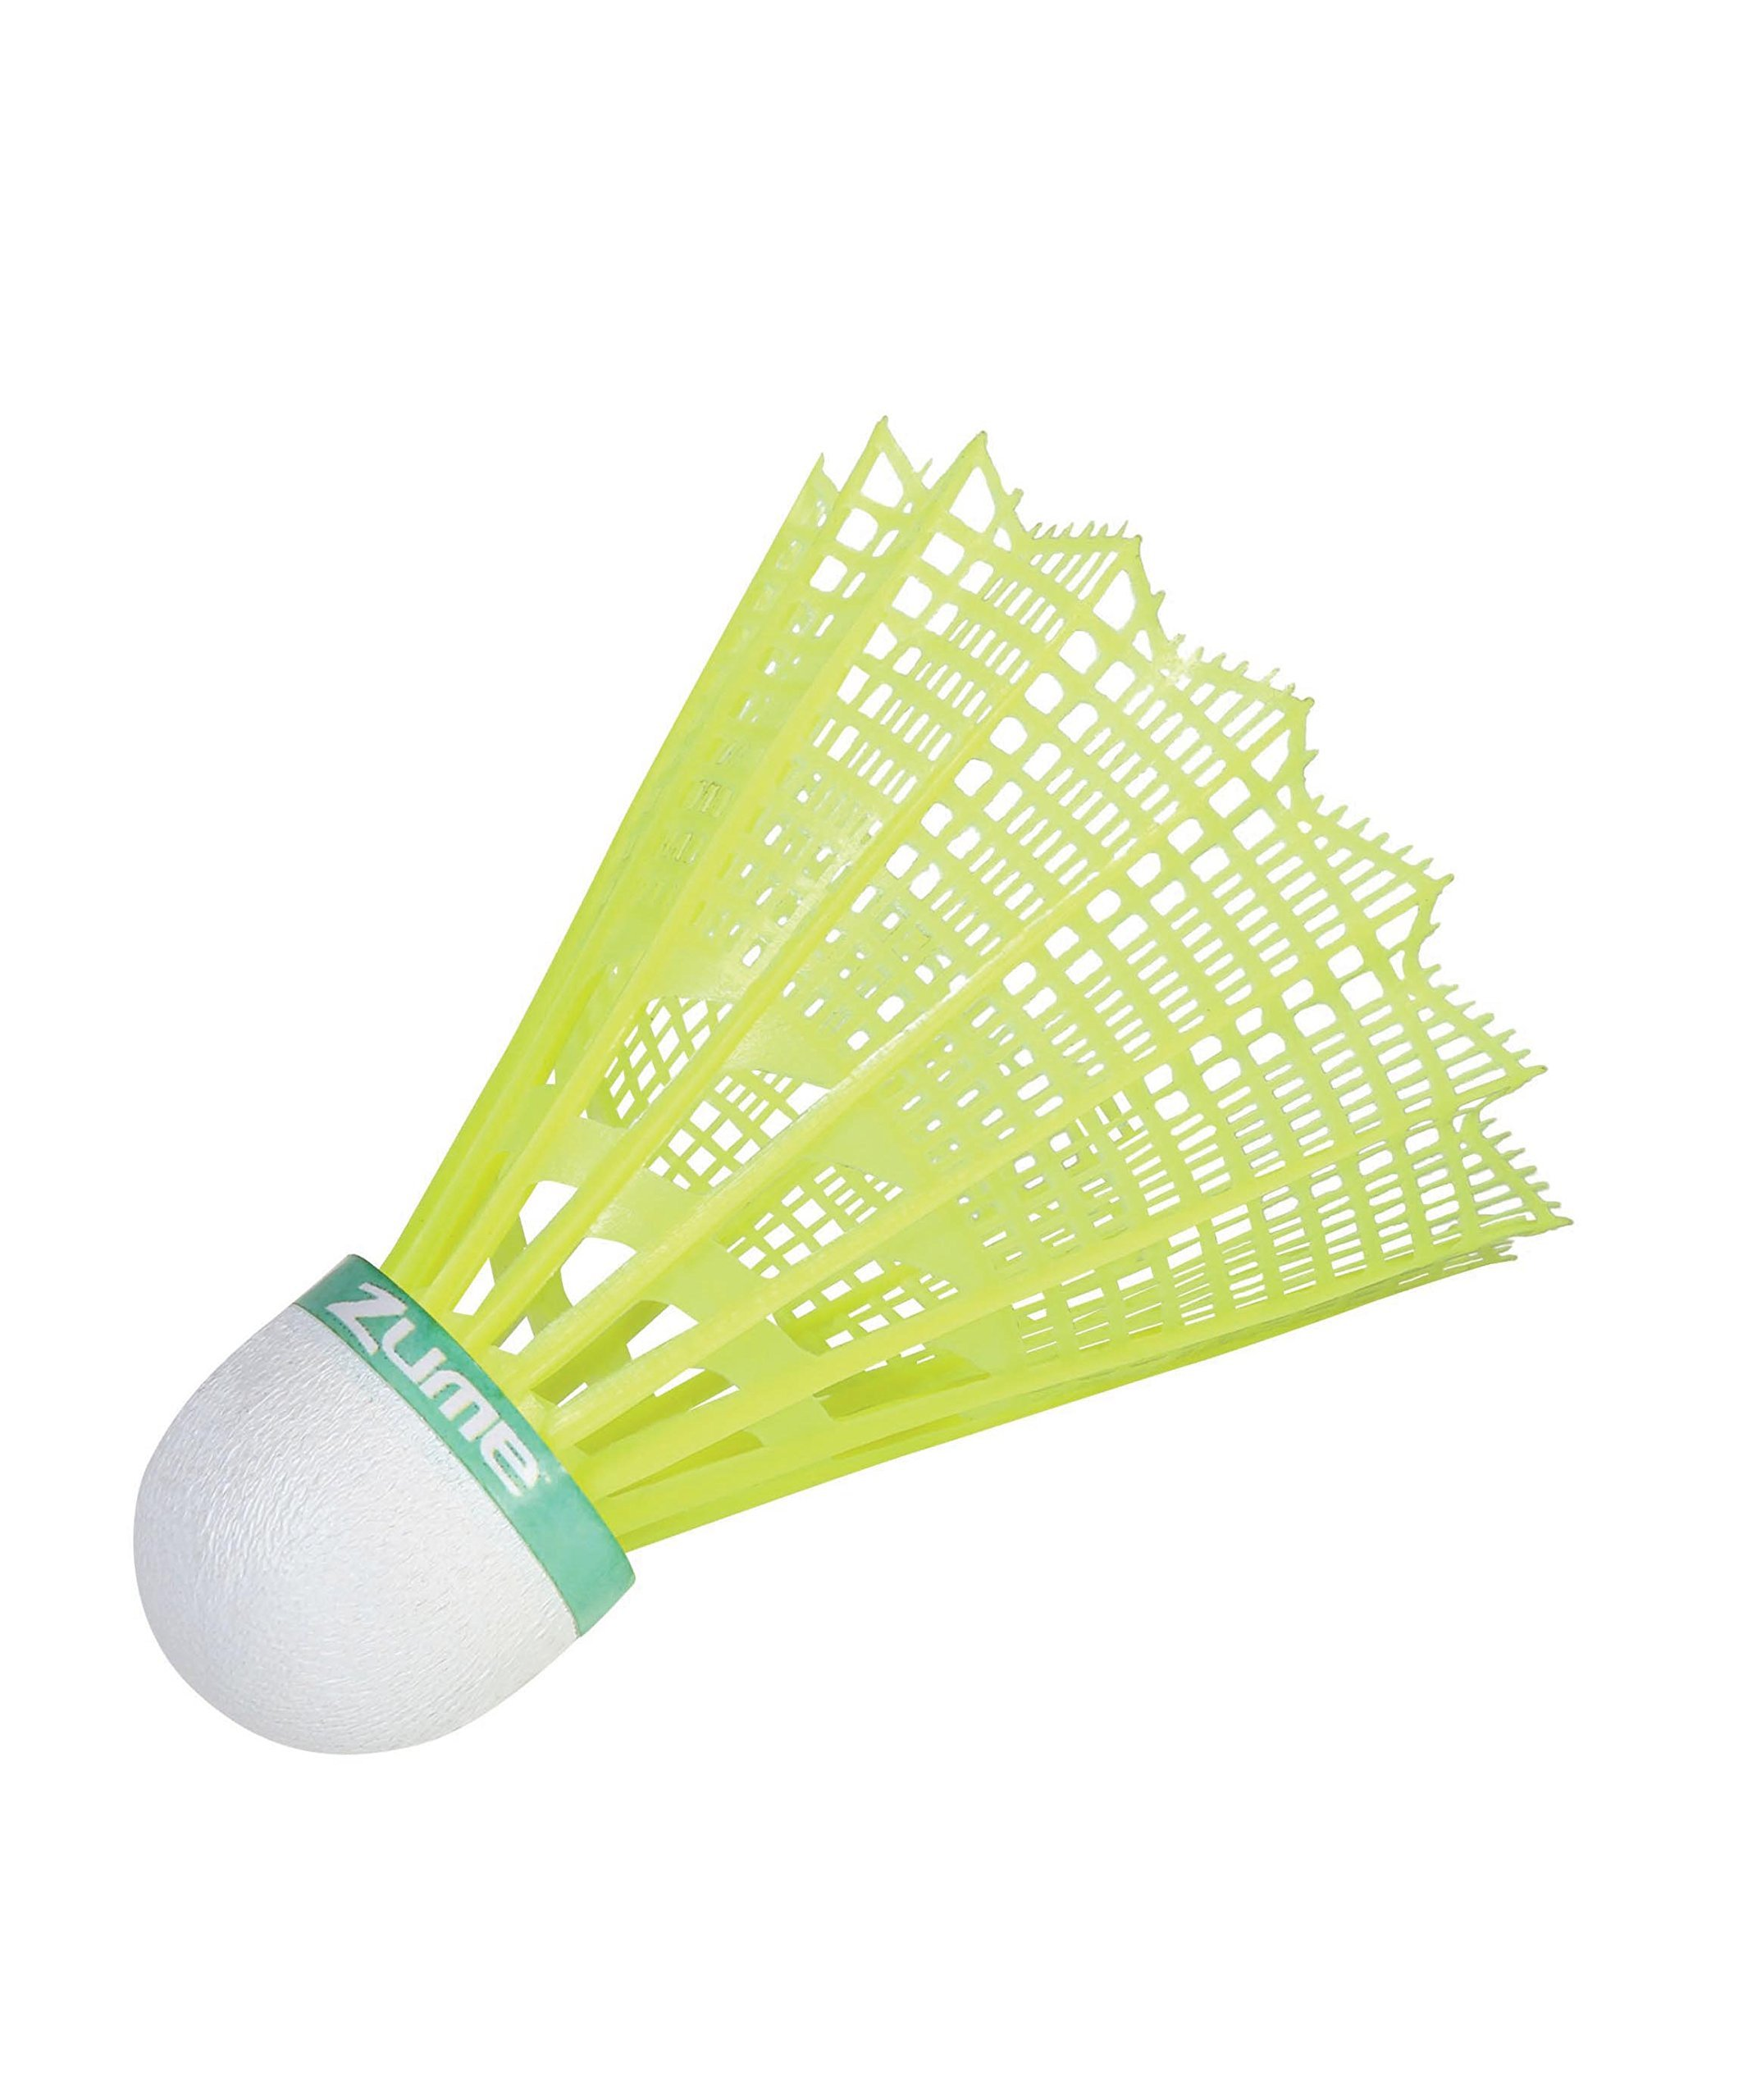 Zume Games Portable Badminton Set with Freestanding Base - Sets Up on Any Surface in Seconds - No Tools or Stakes Required (Renewed) by Zume (Image #6)